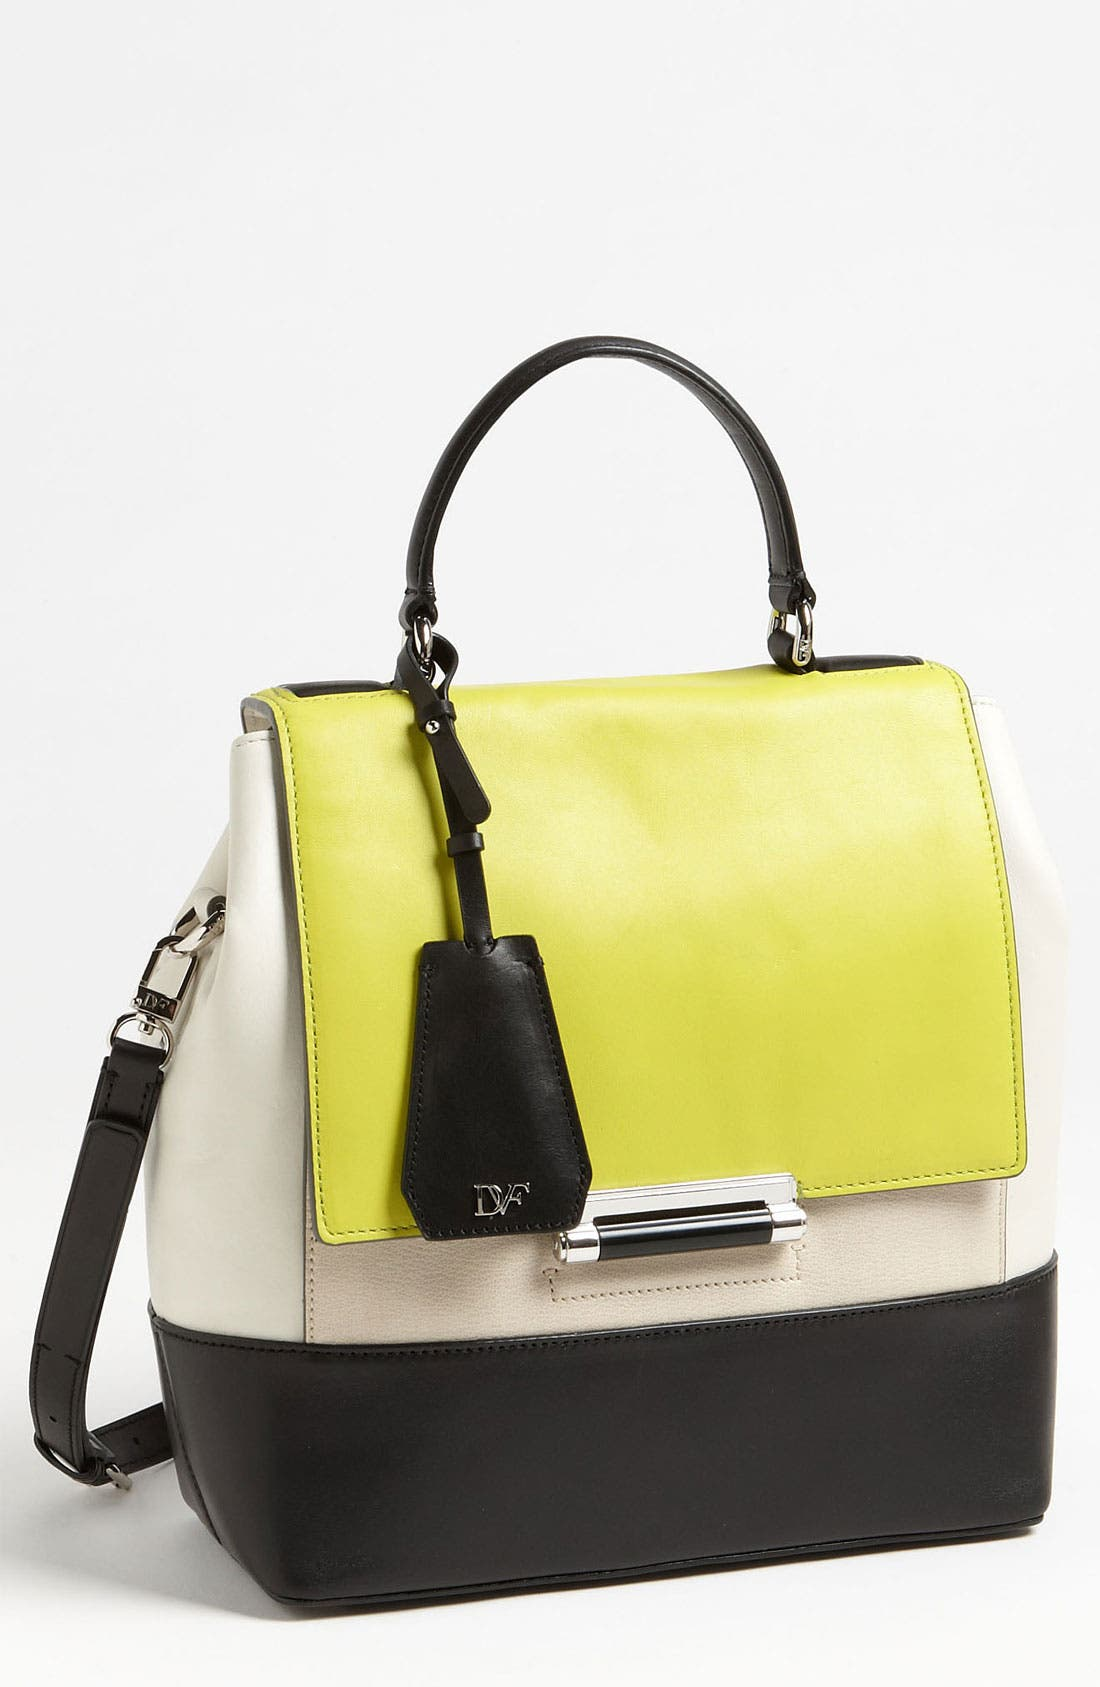 Alternate Image 1 Selected - Diane von Furstenberg '440 Top Handle - Small' Colorblock Satchel